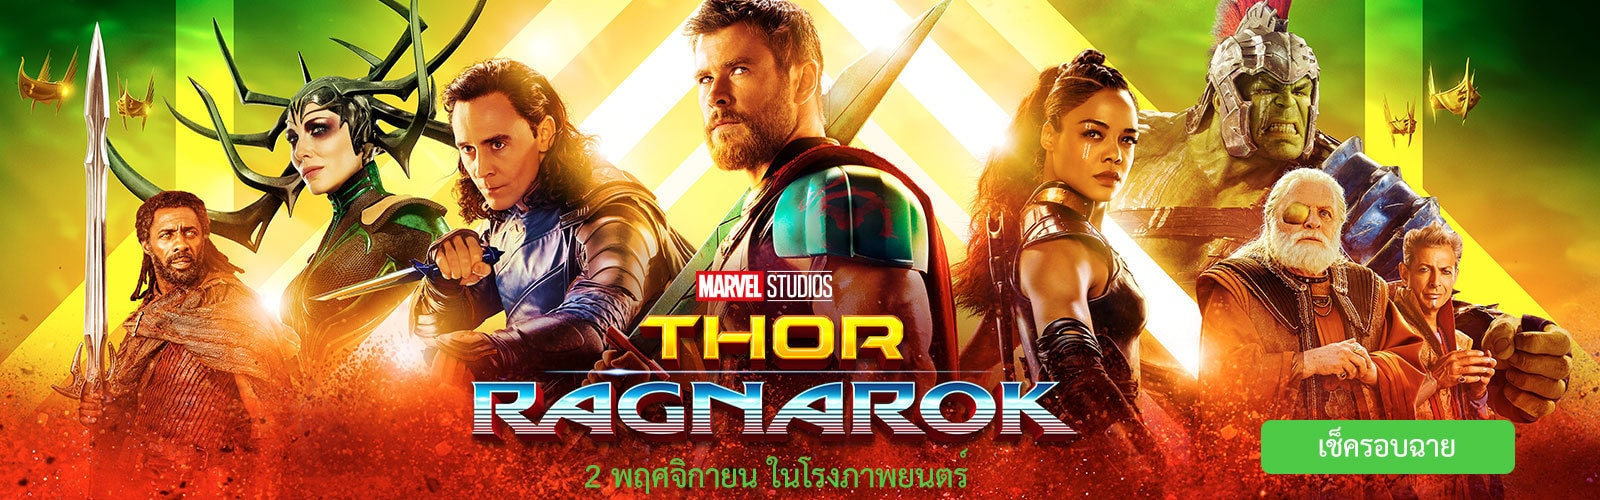 Thor Ragnarok - Tickets - Hero - TH